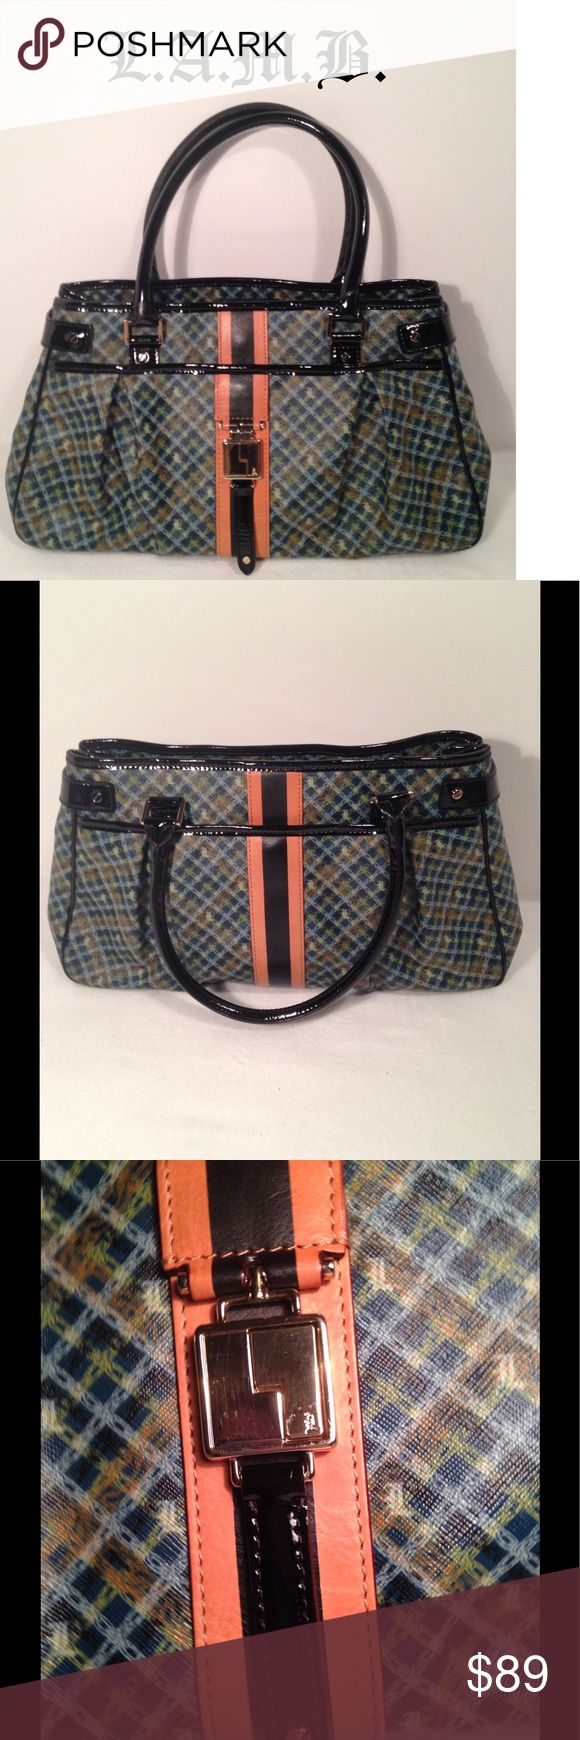 """🌹L.A.M.B. Chain Plaid Handbag🌹 Gorgeous handbag designed by Gwen Stefani. Zip on bottom to expand bag larger. Great condition. Front handles peeling a bit from shelf wear. I've never used bag. Interior is super clean. No exposed piping. Front & rear exterior snap closure pockets. Interior 1 zip & 2 open pockets. Strap drop 6"""". Goldtone hardware, a few small hairline scratches. Beautiful handbag. Authentic & smokefree. Carefully review all photos & ask any questions prior to purchase…"""